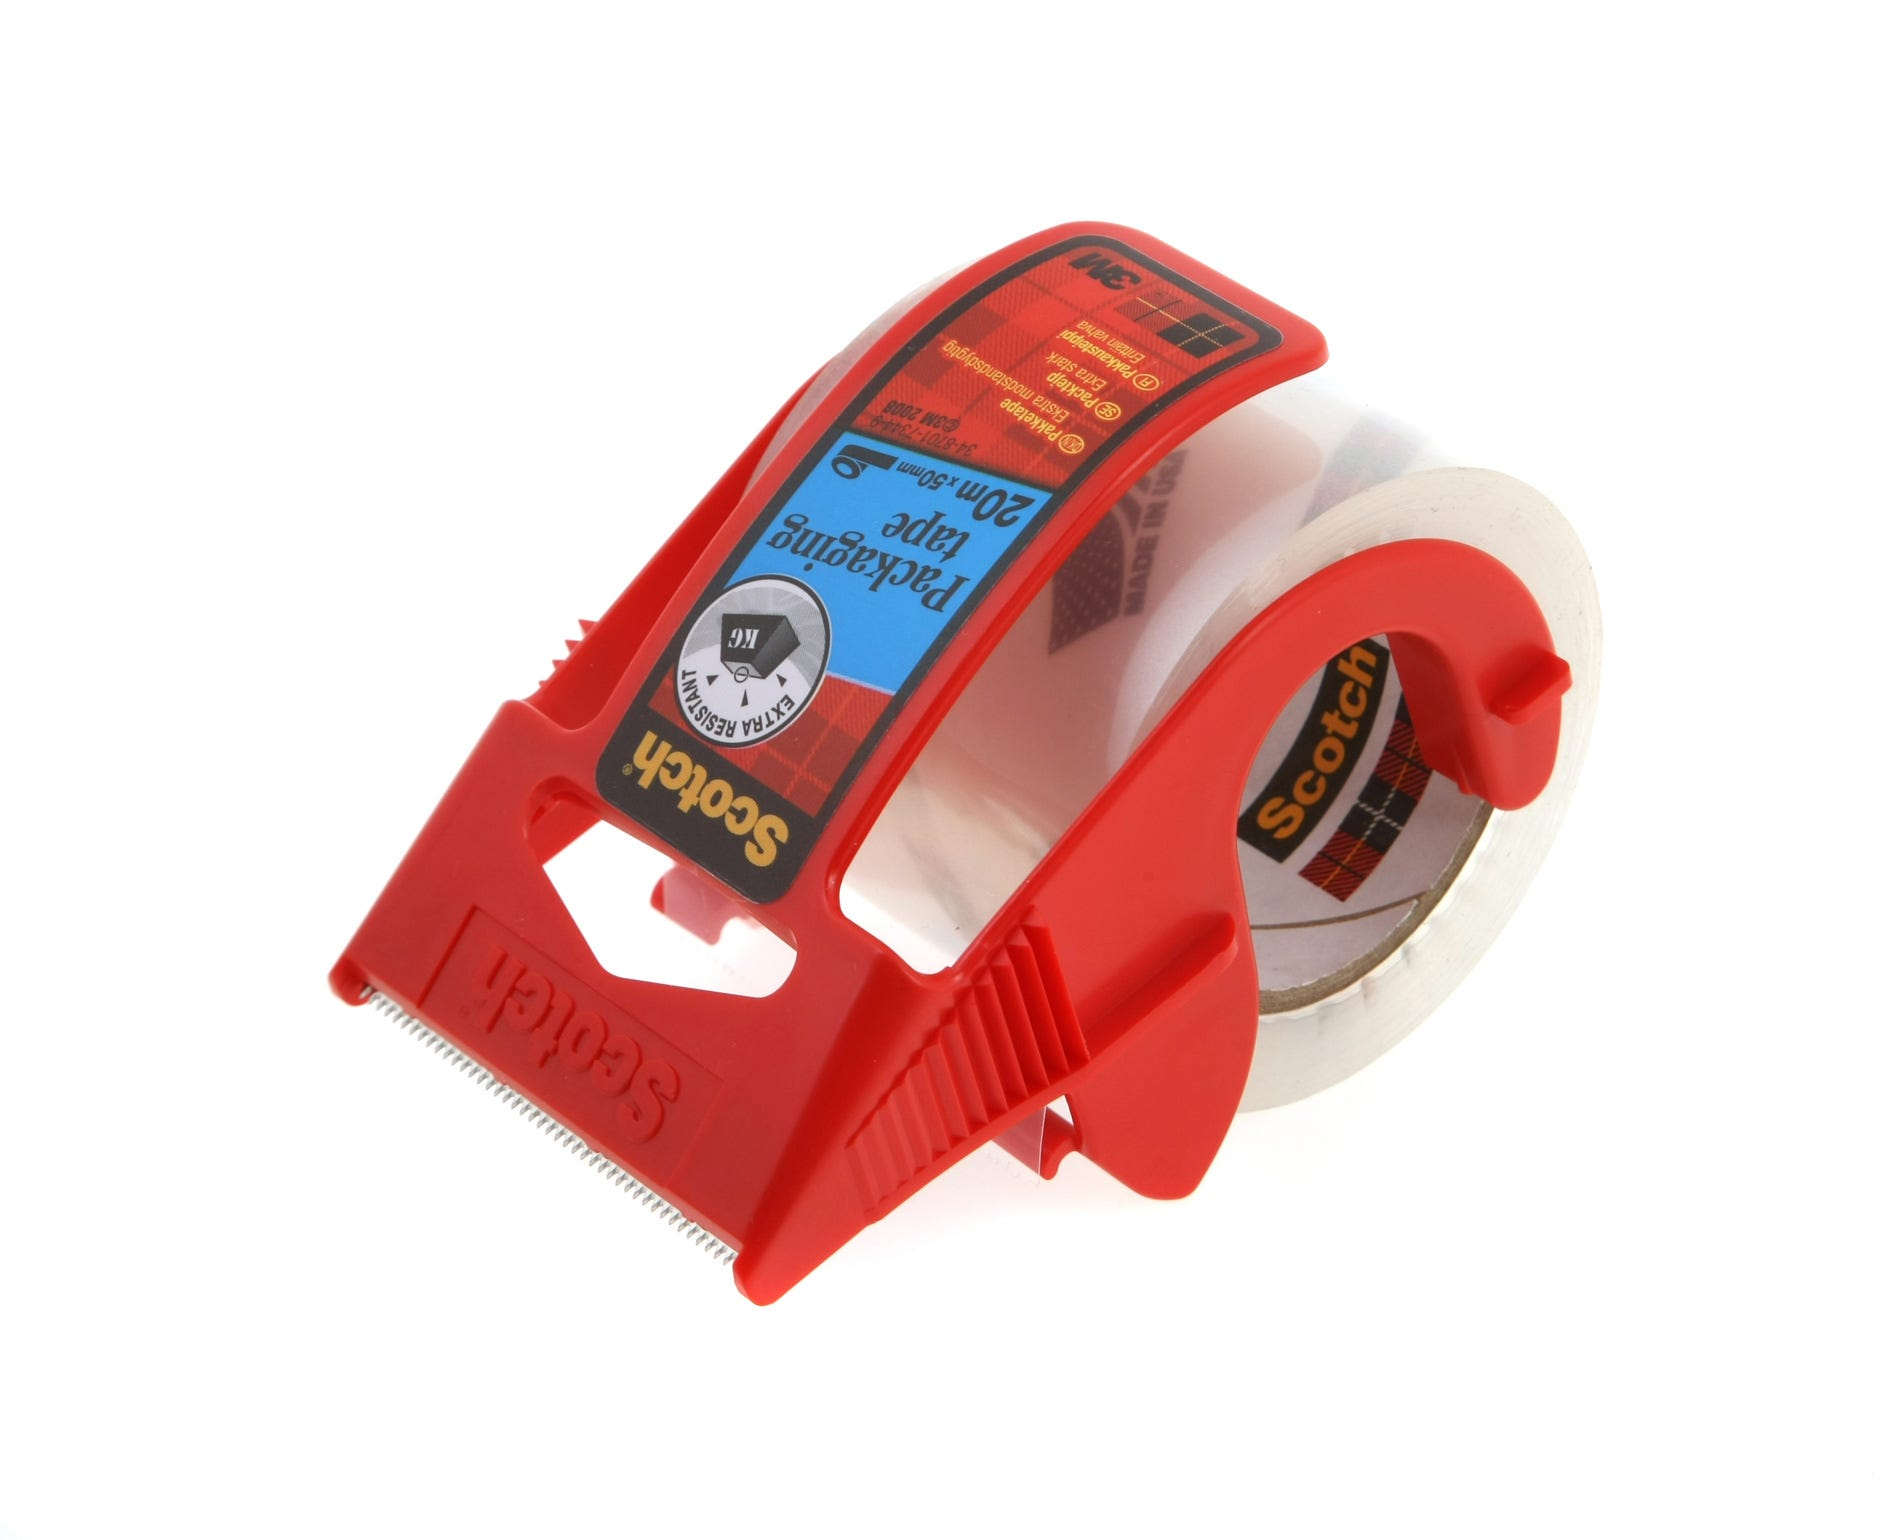 Image of 3M Scotch Mailing Tape 50mm x 20m with Dispenser, Clear